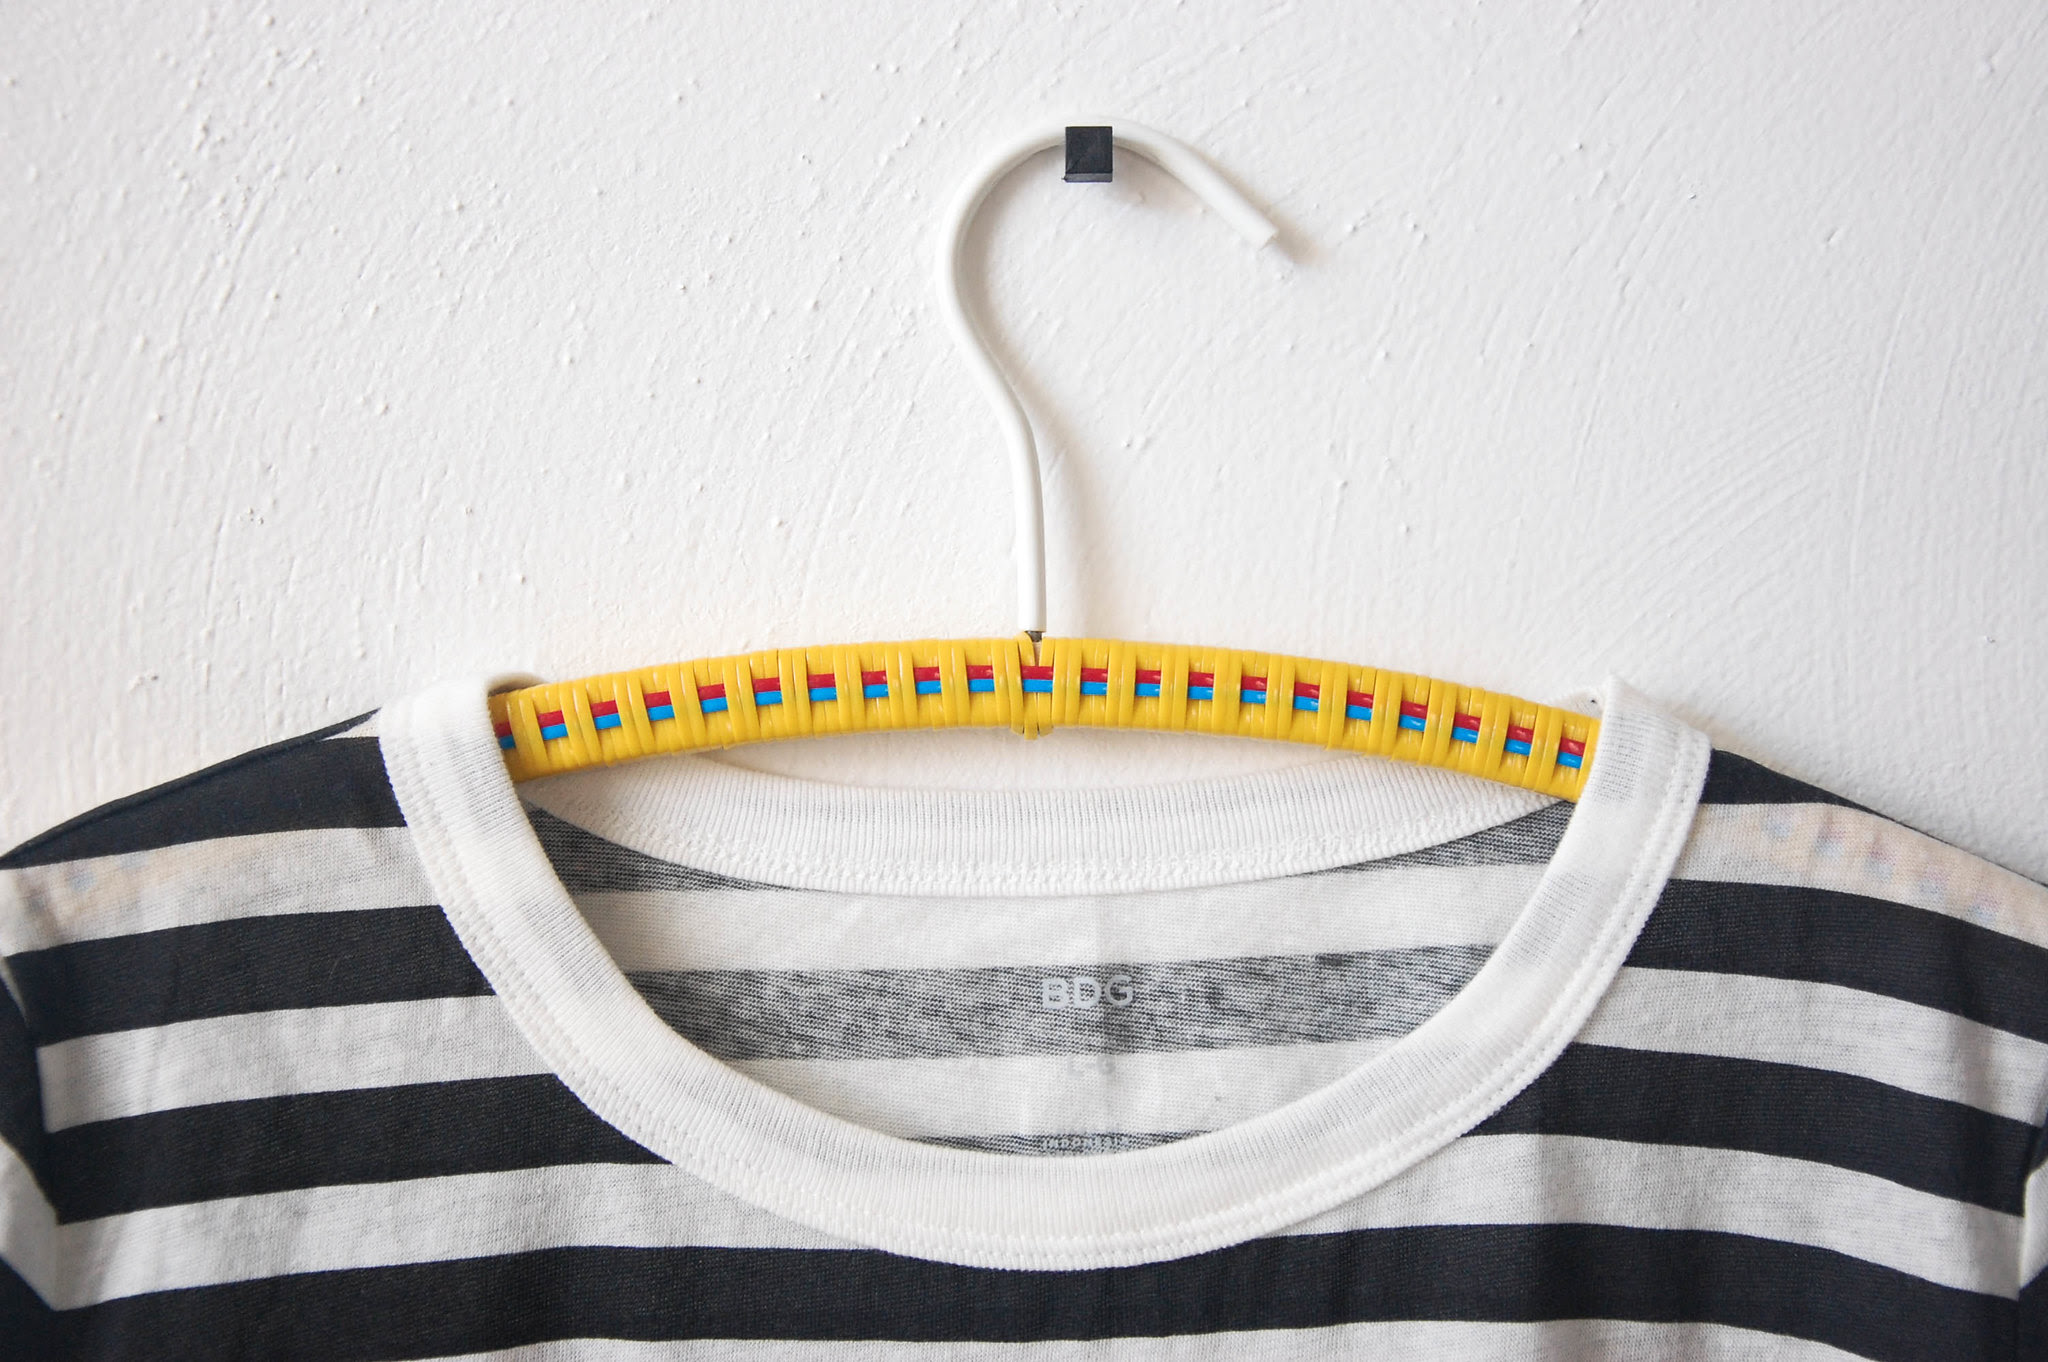 well it's okay: DIY PLASTIC LACE WOVEN CLOTHES HANGERS